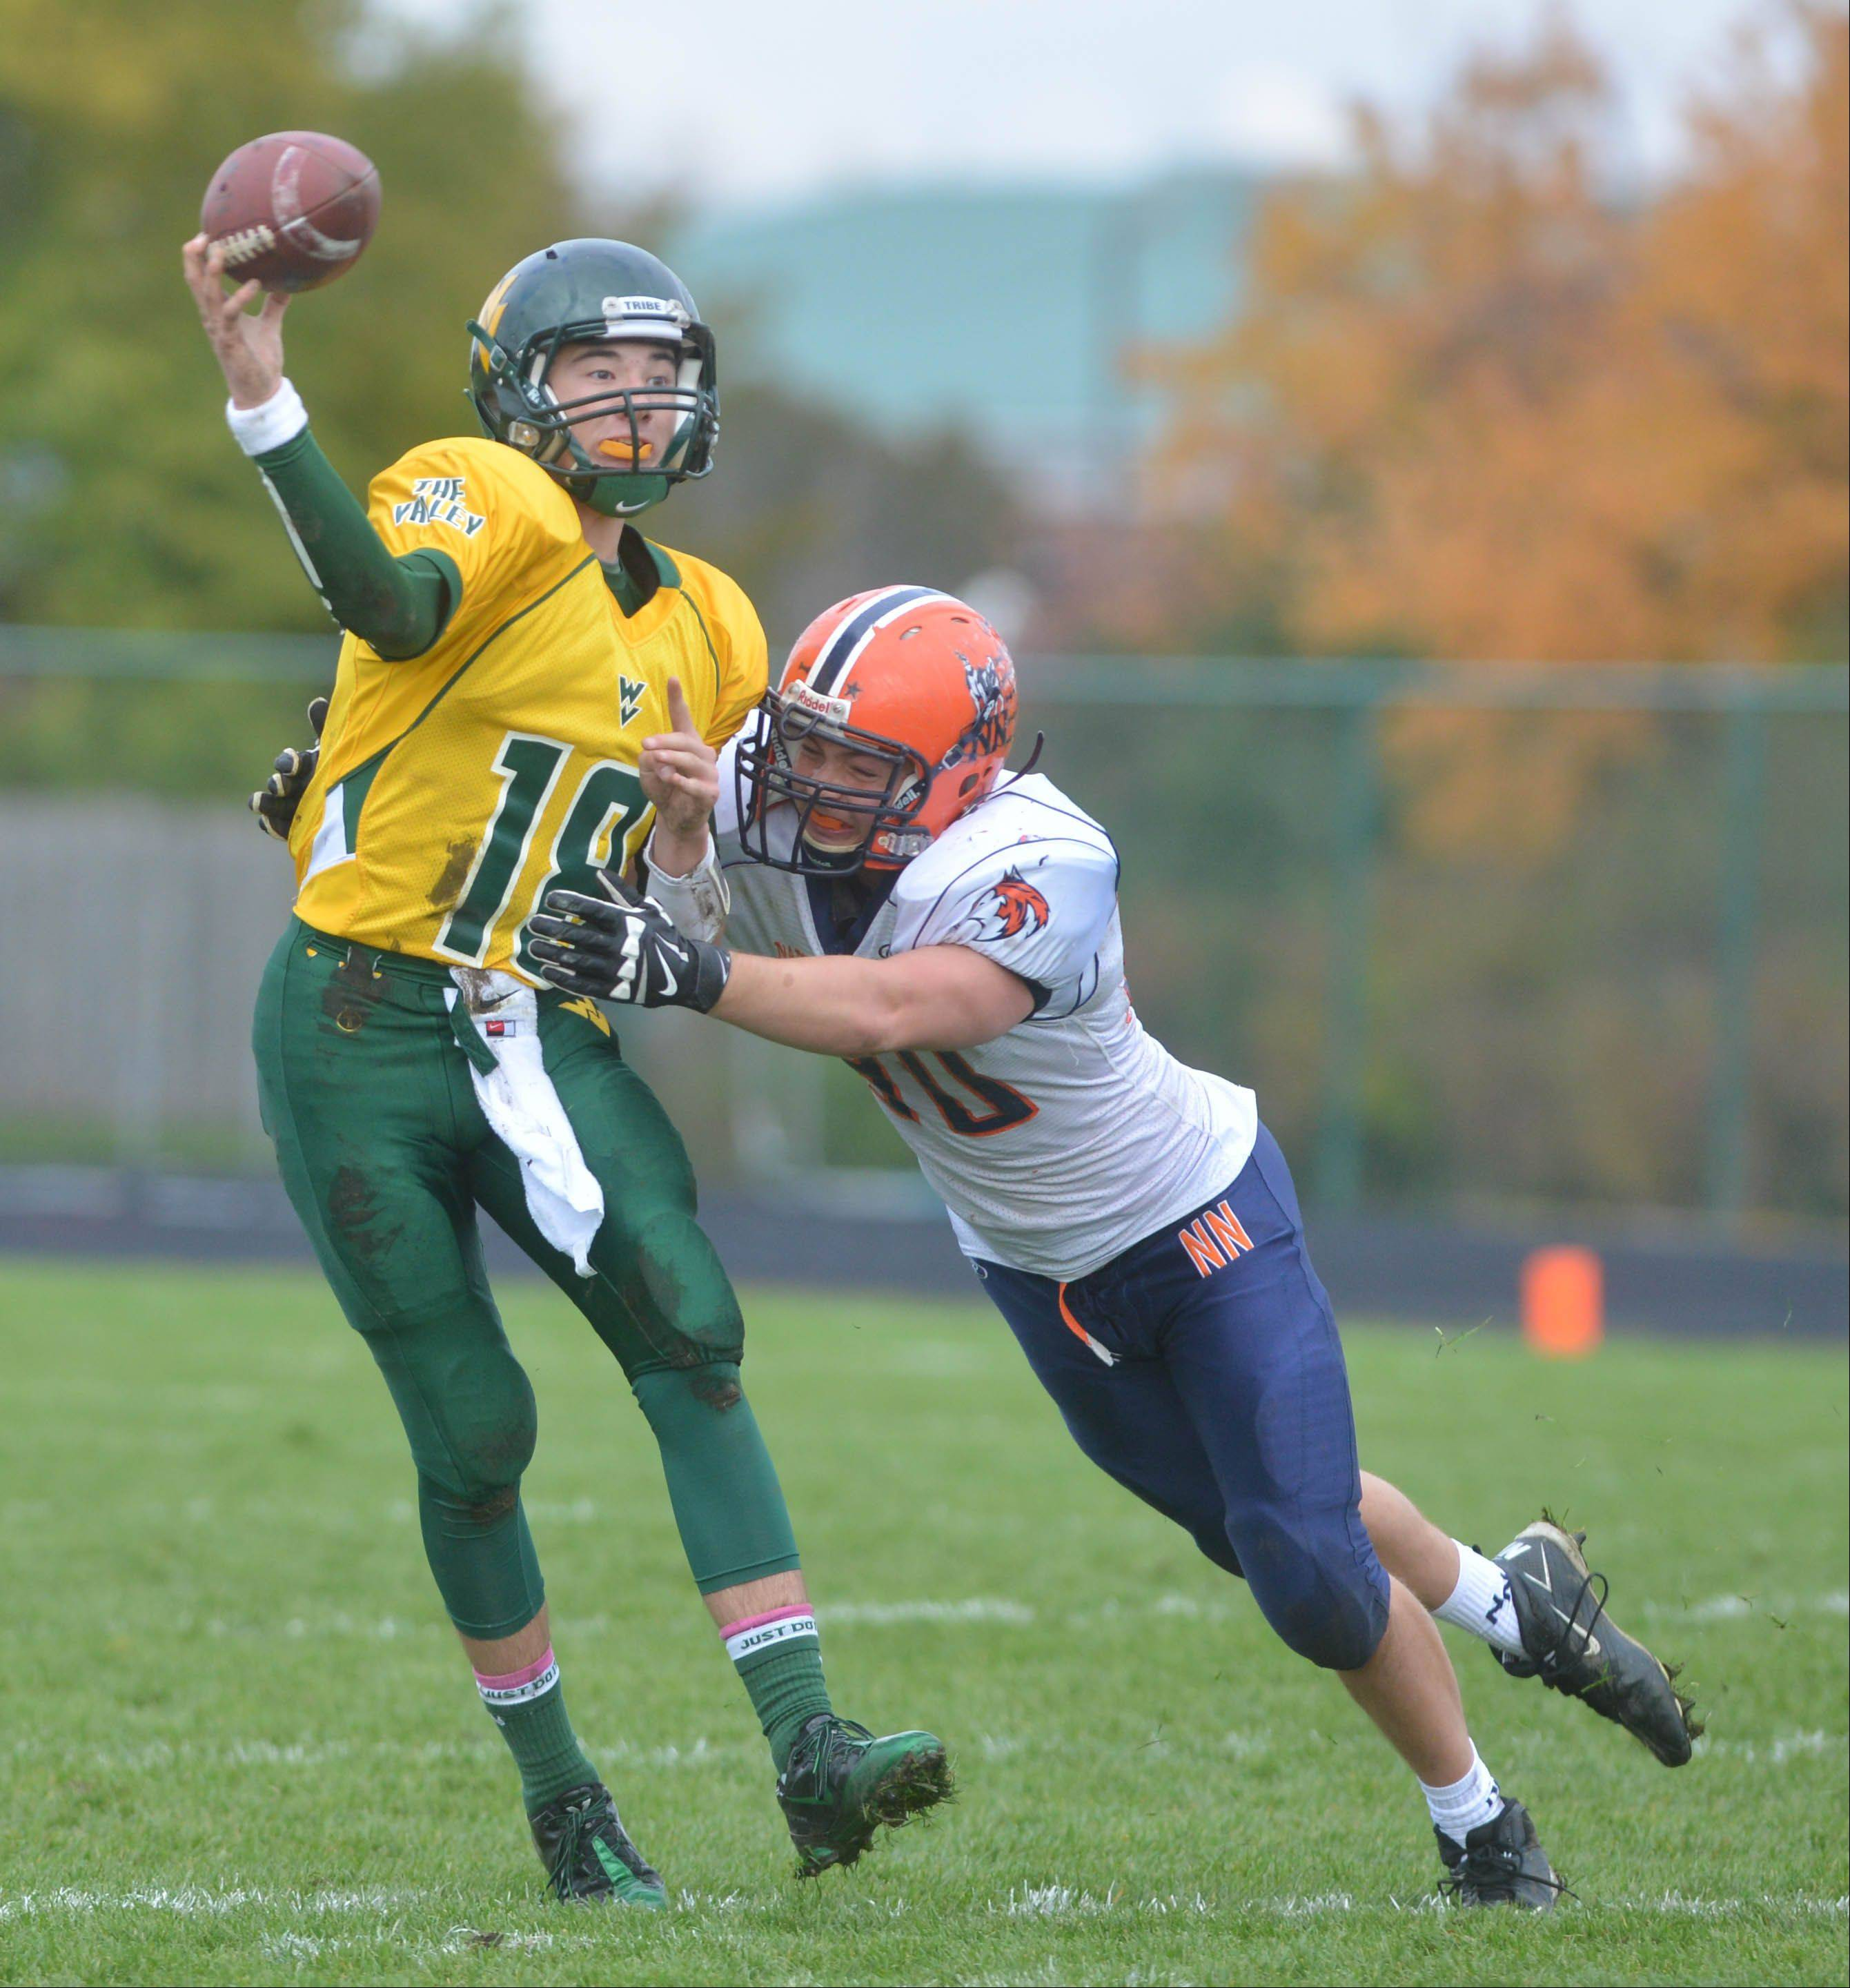 Jack Eddy of Waubonsie Valley throws a pass against Naperville North Saturday.